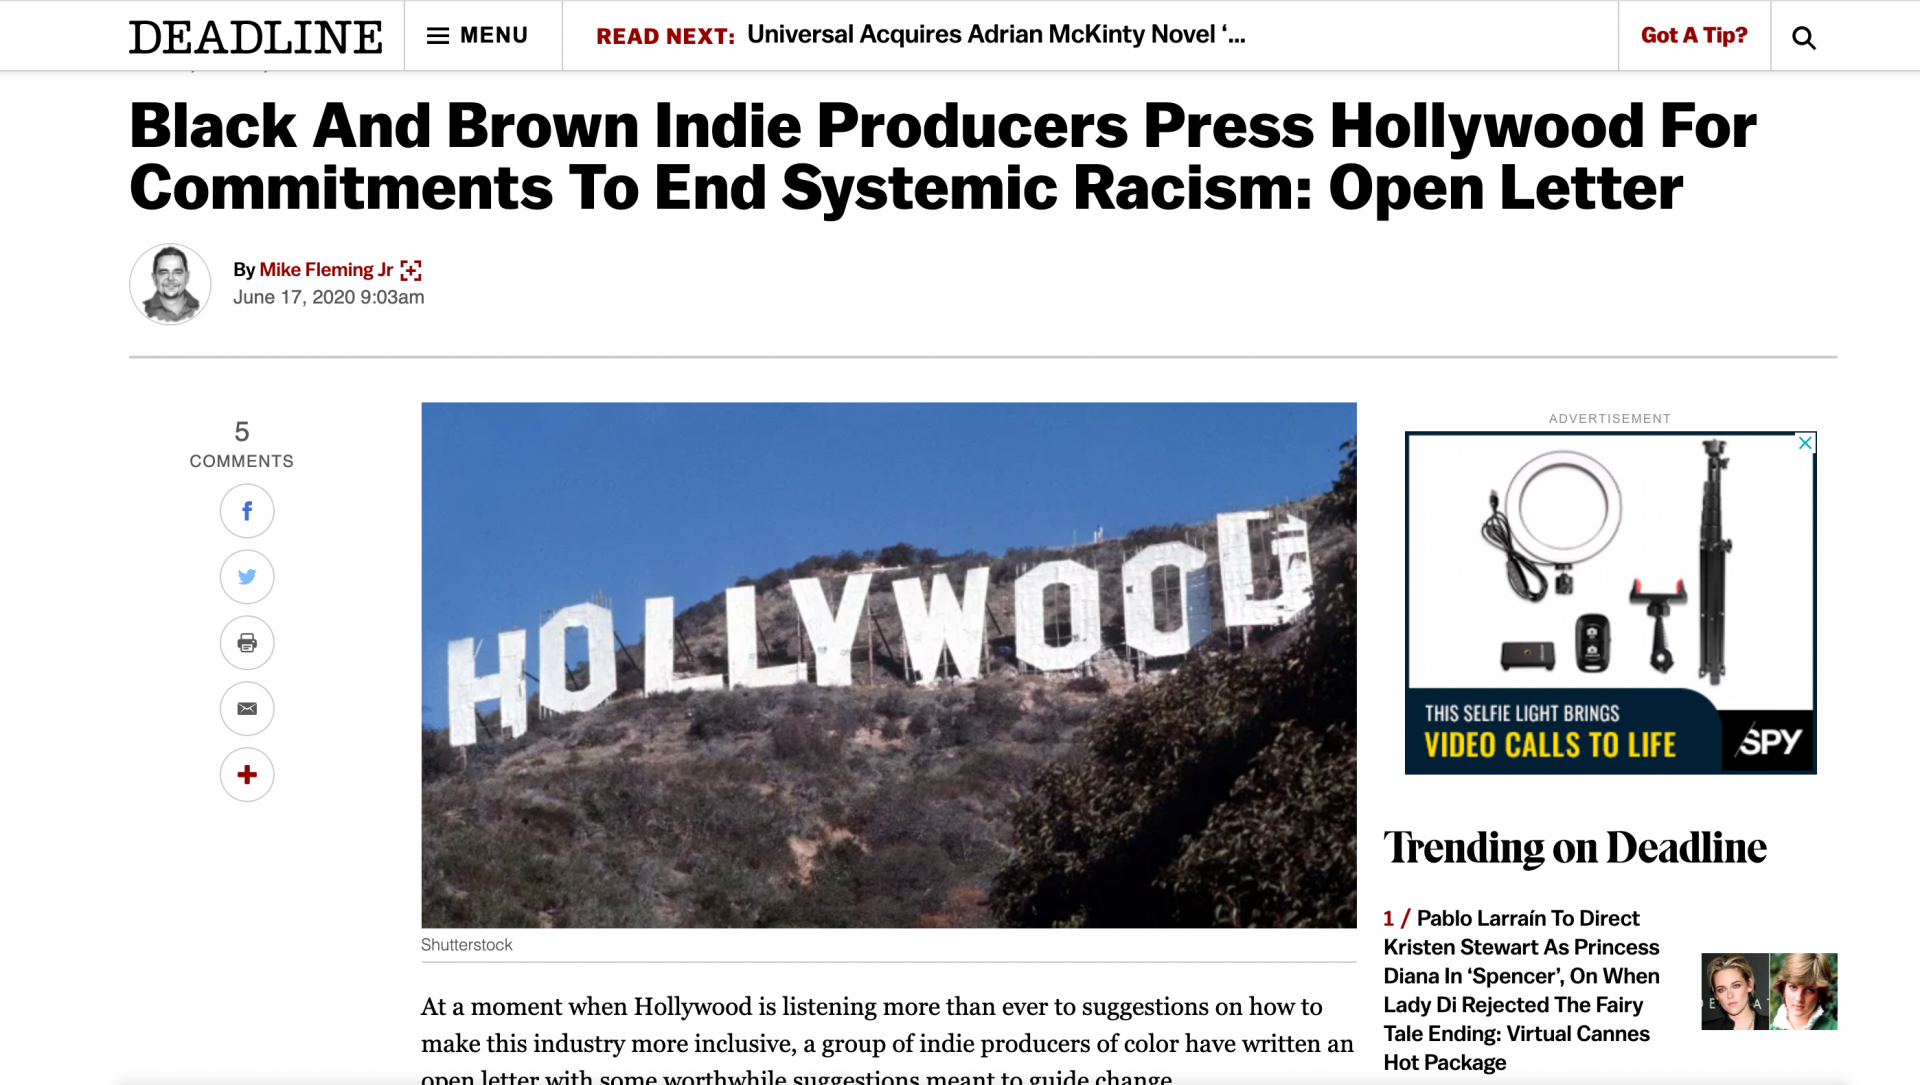 #TelltheTruthHollywood: An Open Letter to Hollywood in the Time of #BlackLivesMatter